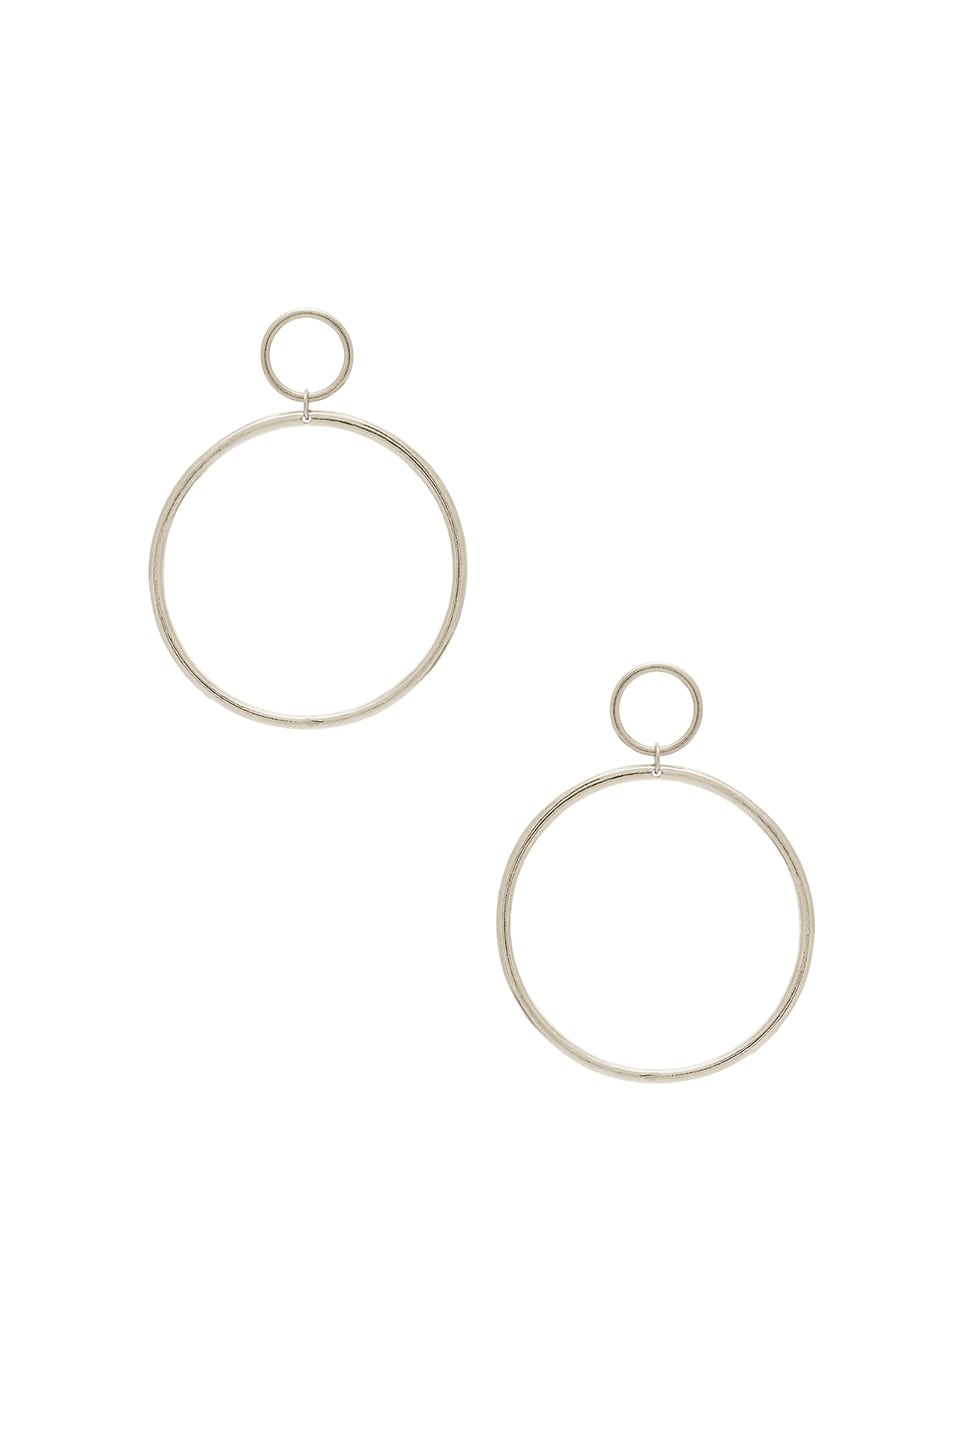 Vanessa Mooney Cadillac Earrings in Silver